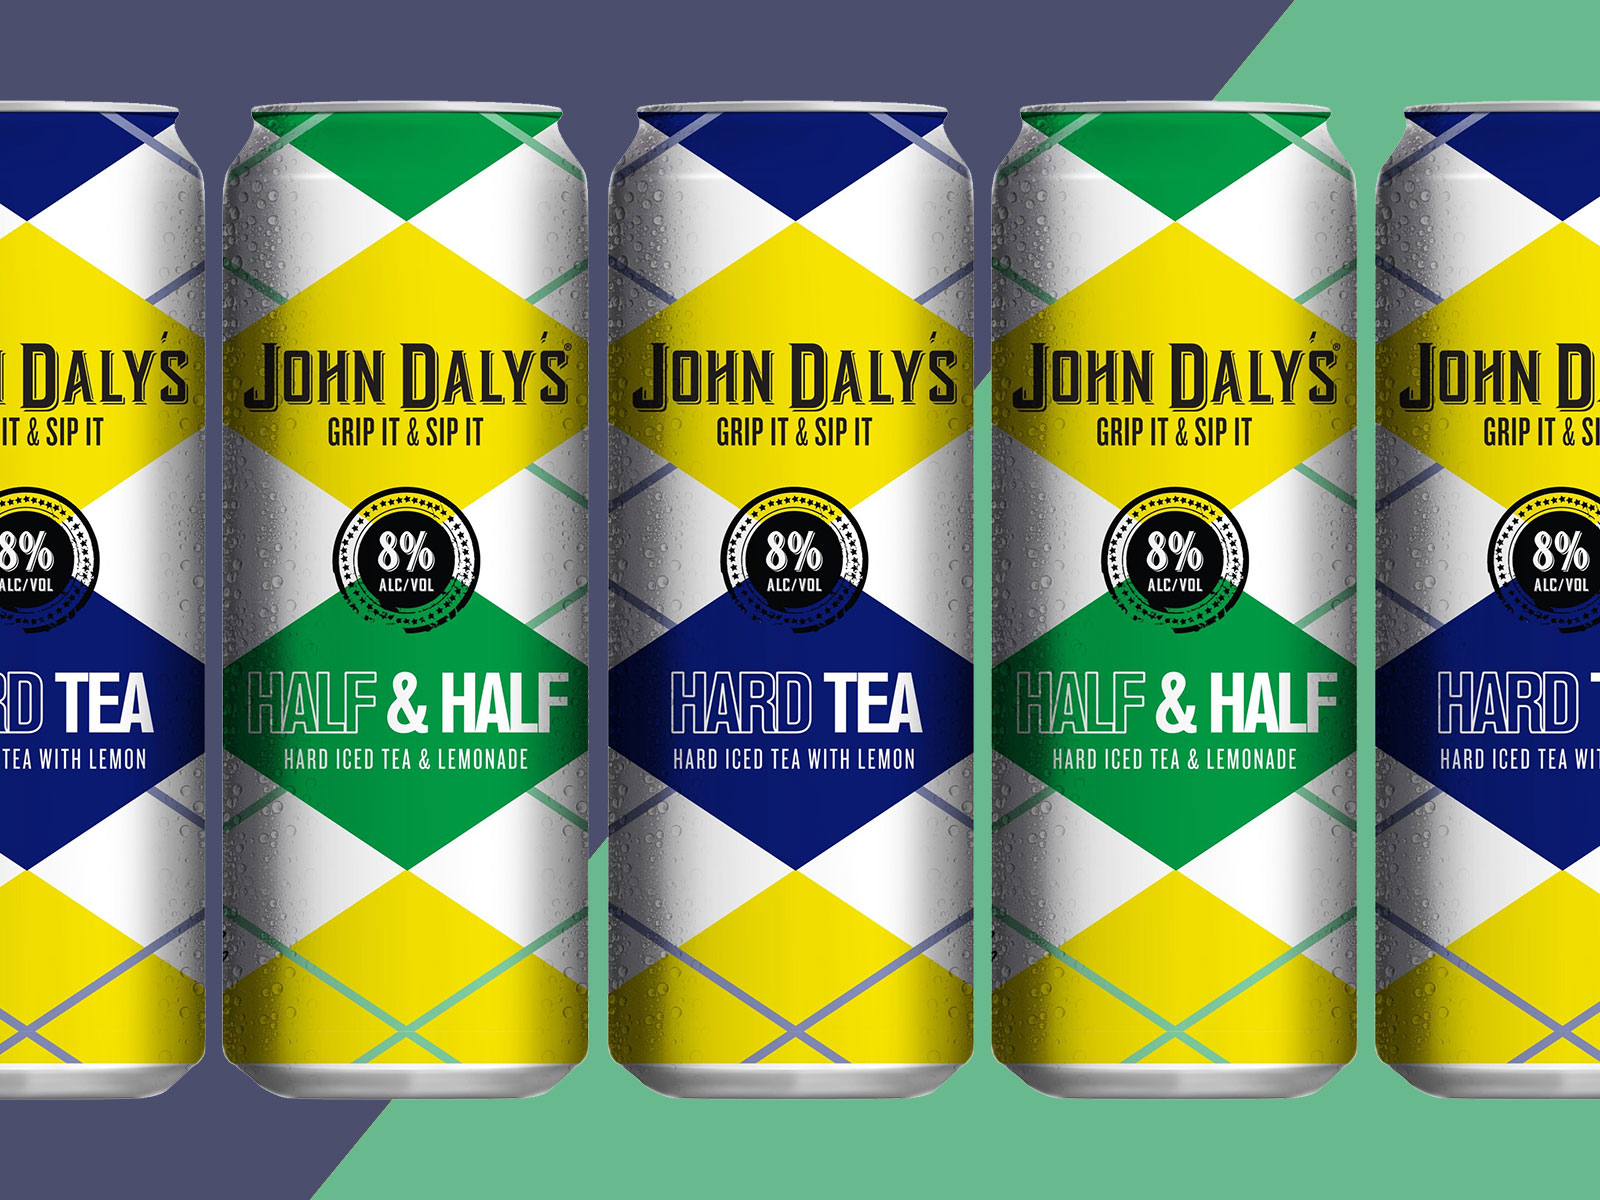 john daly hard teas half and half